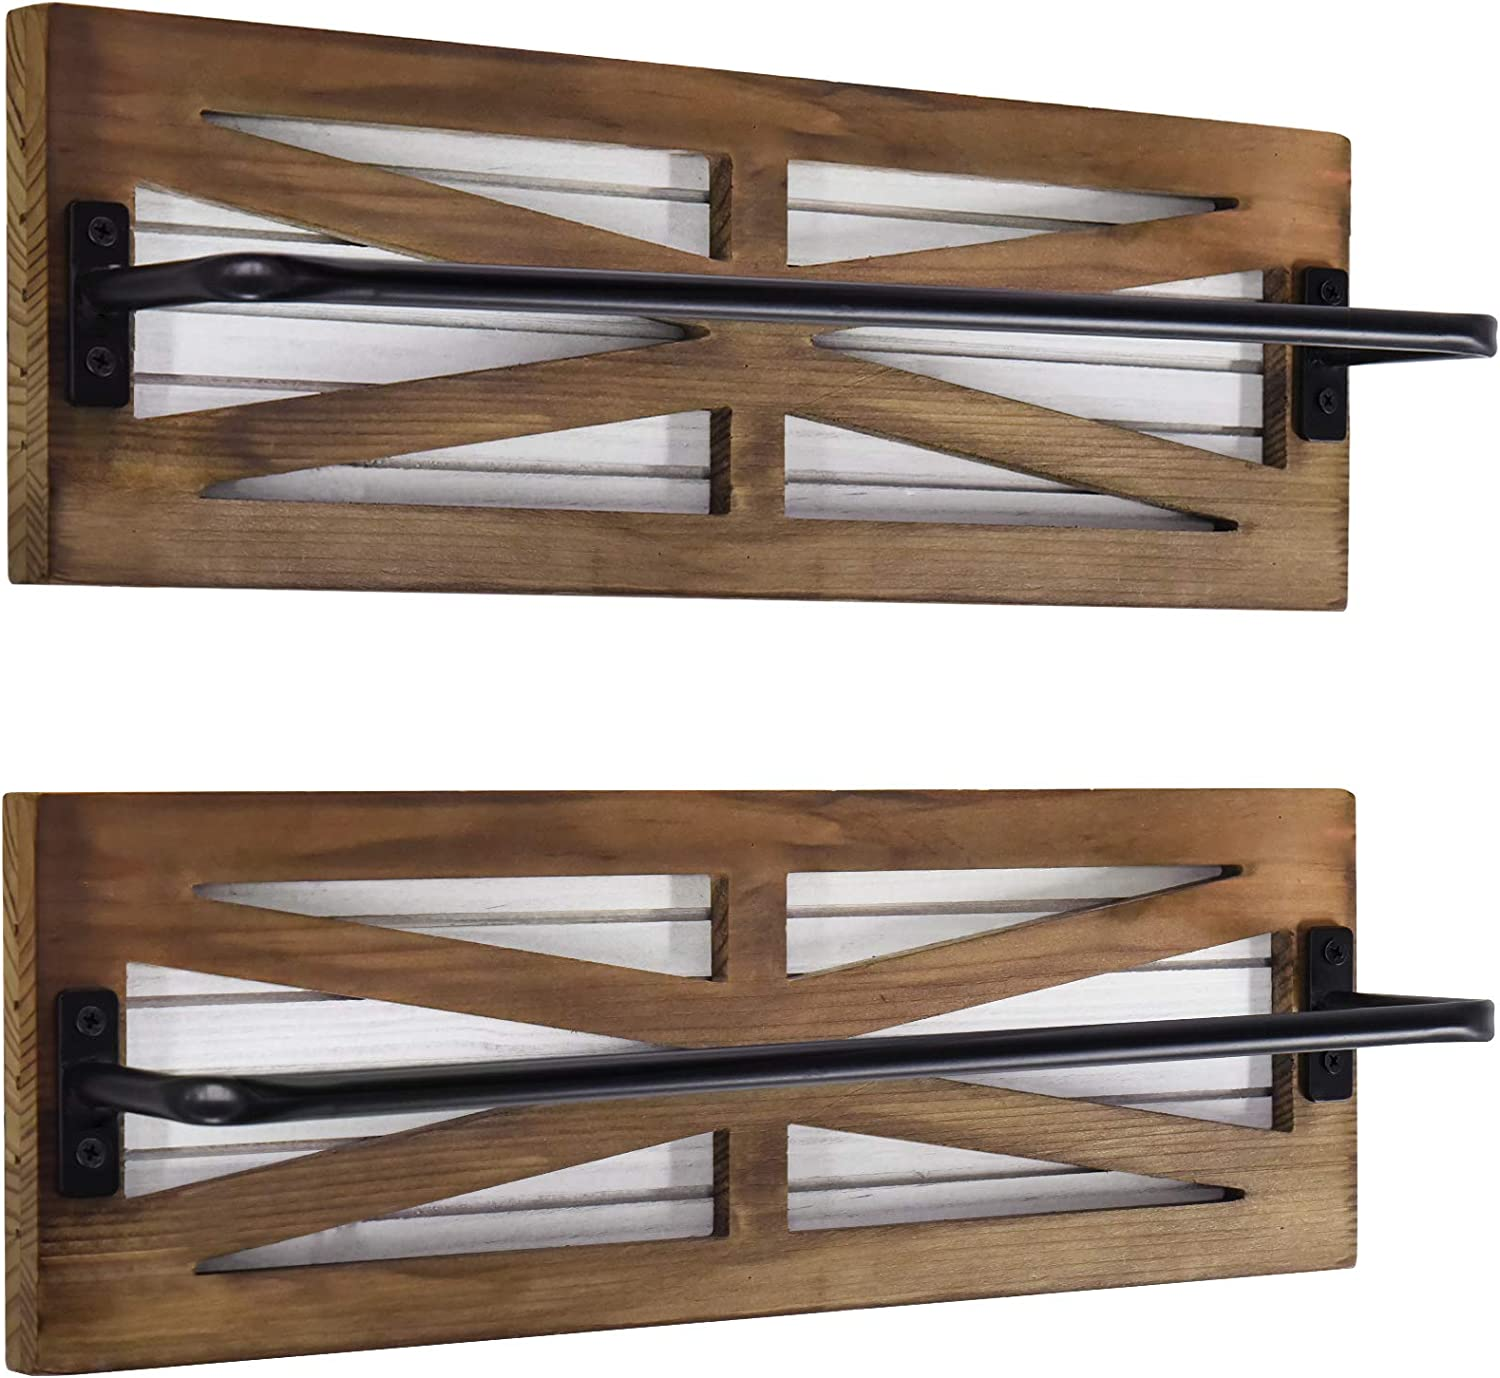 Farmhouse Challenge the lowest price of Japan ☆ Towel Rack for Bathroom Bat Bar Wall Mounted Ranking TOP2